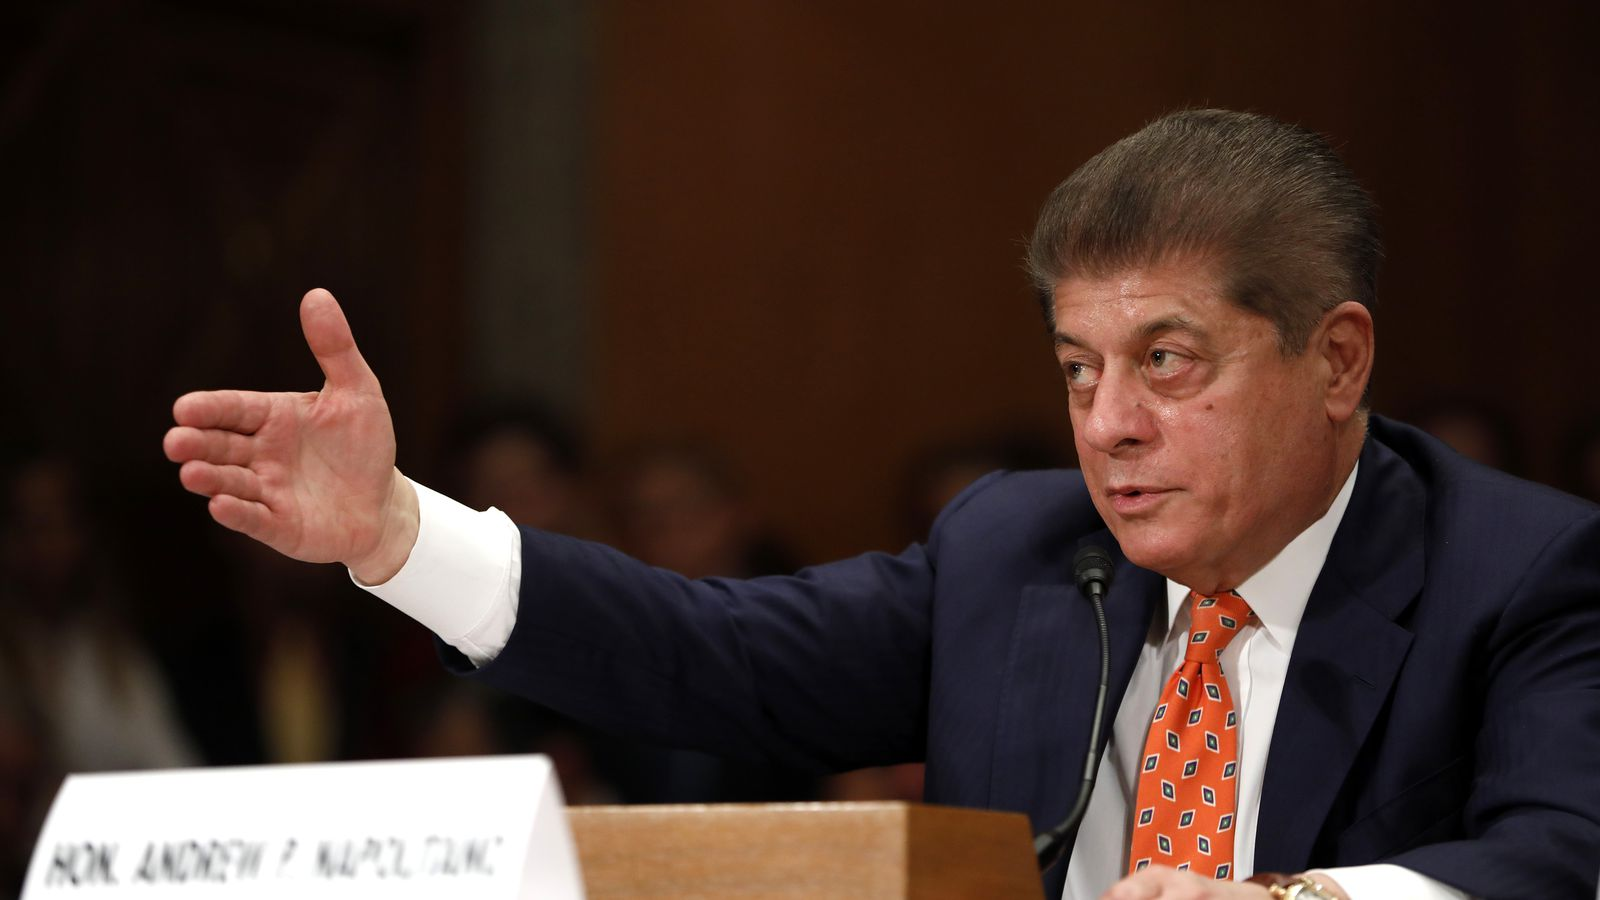 Fox News Judge Napolitano outlines likely articles of